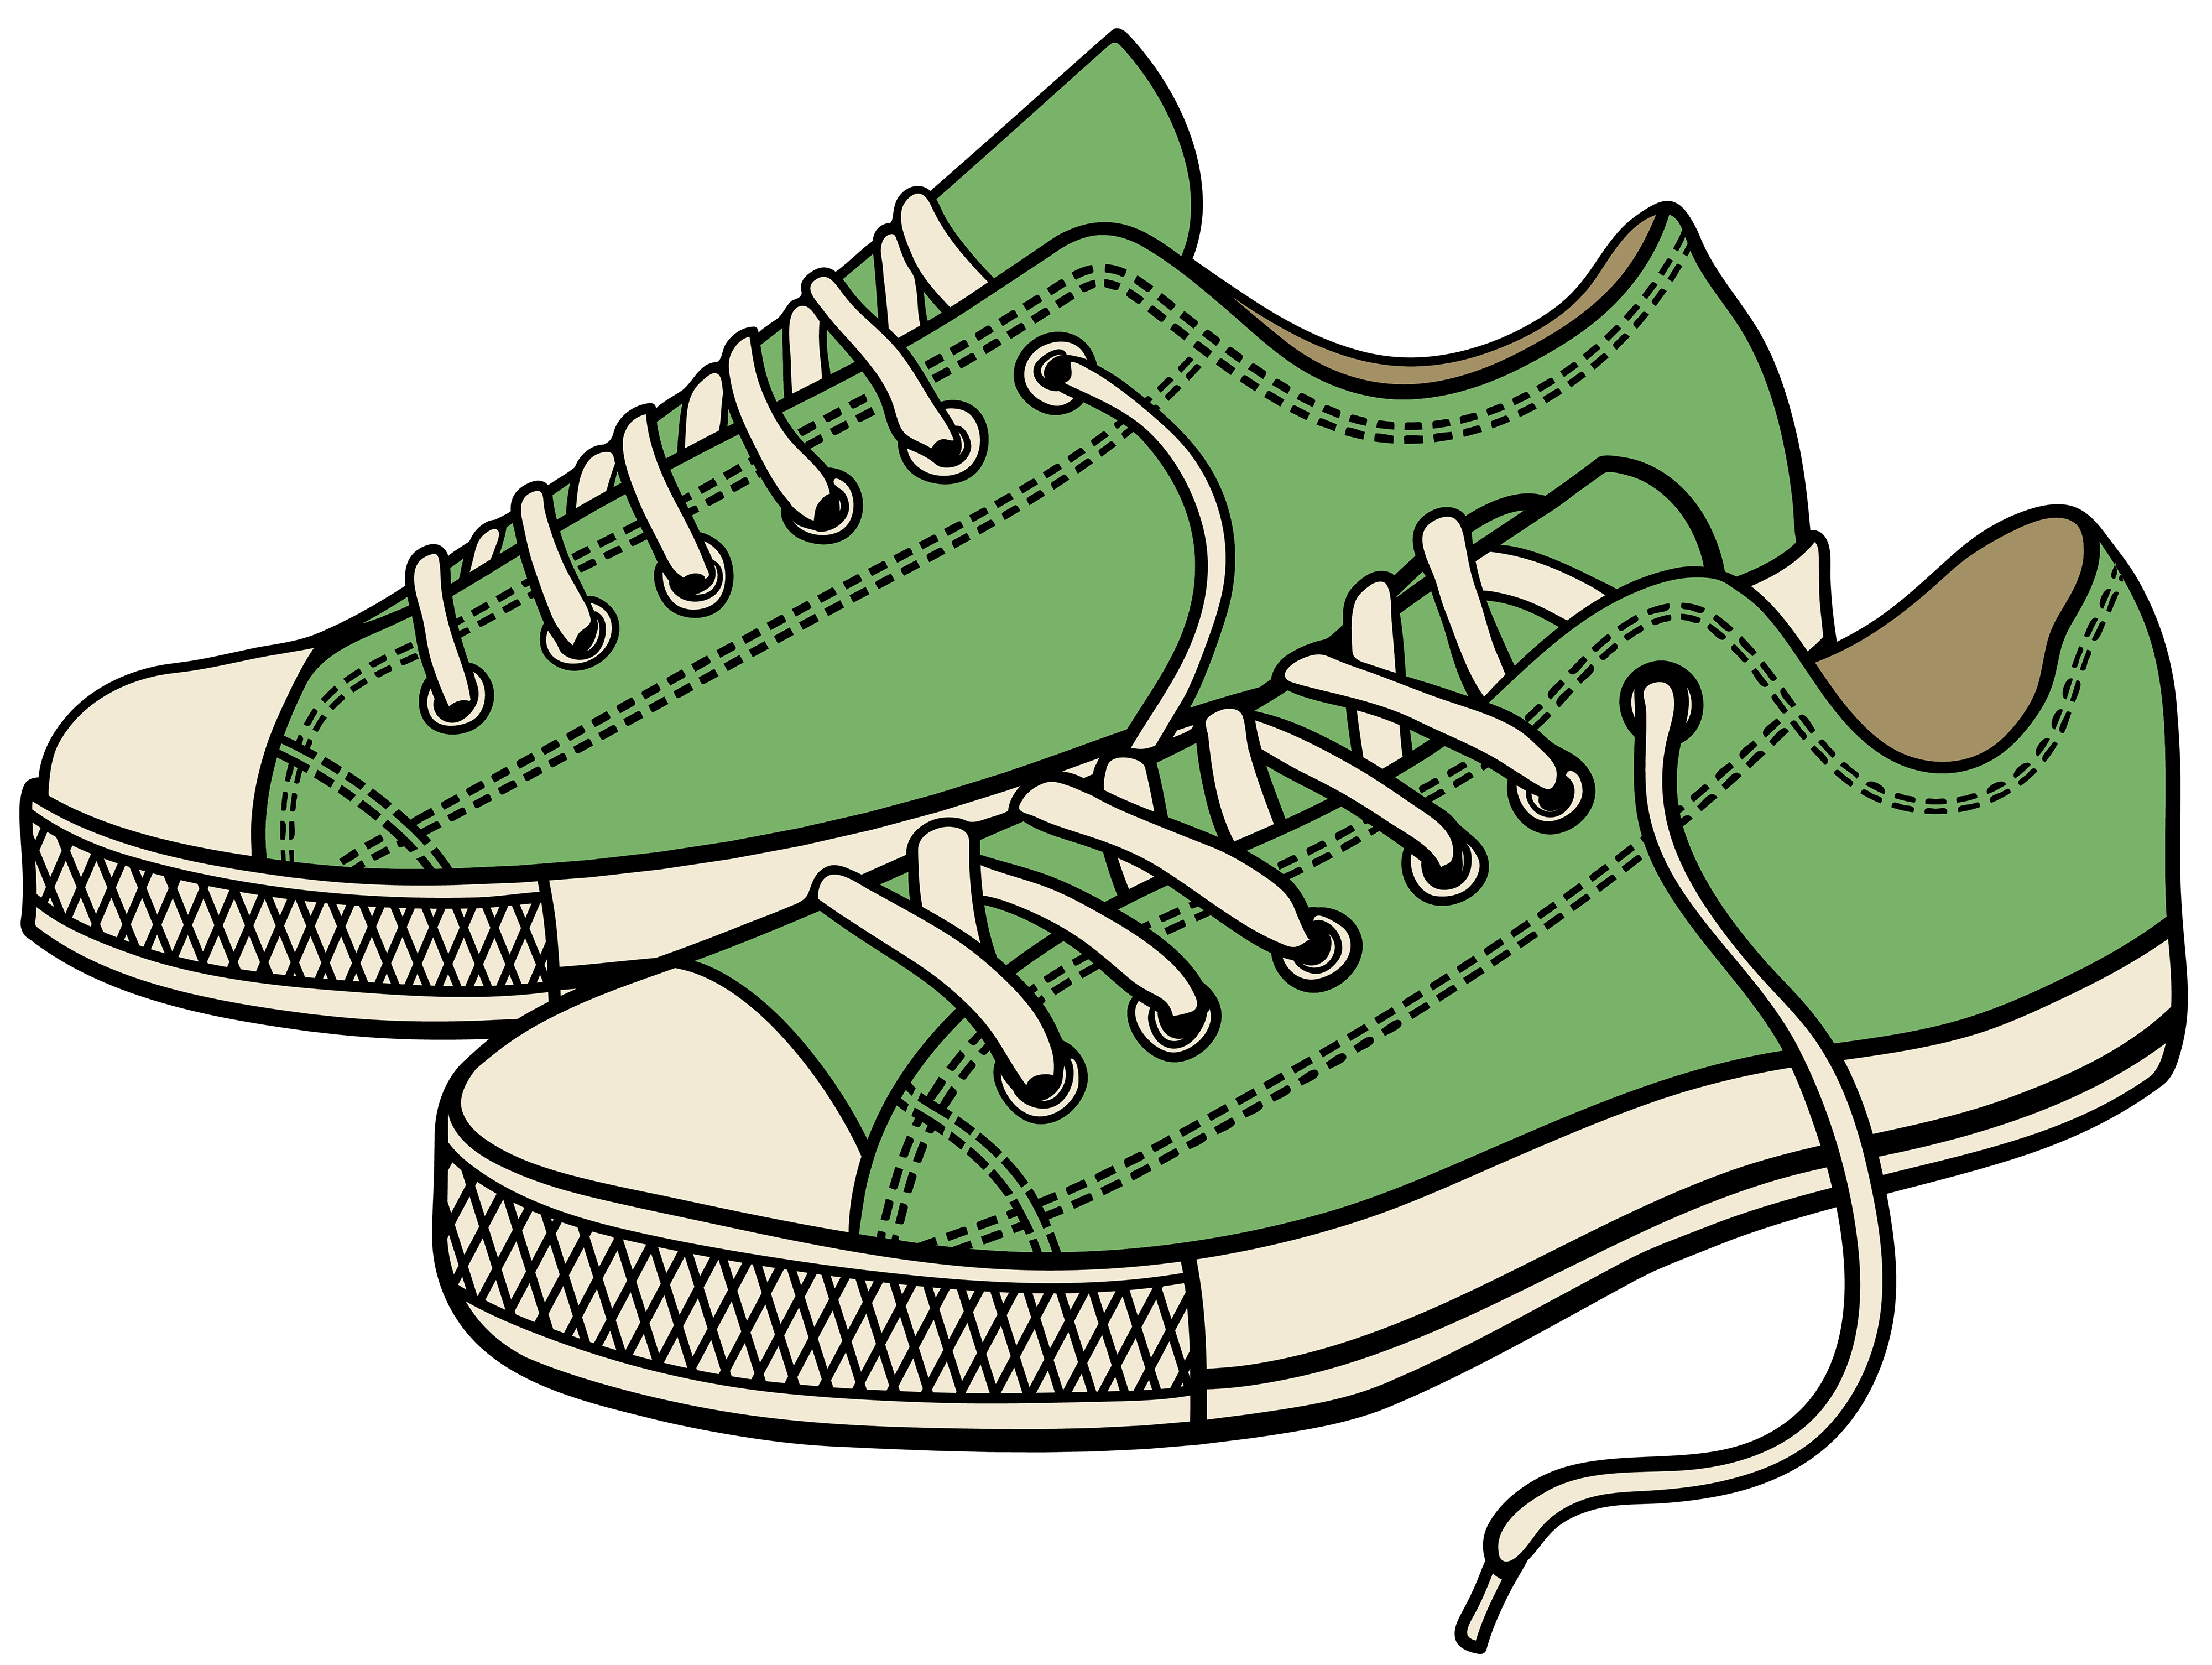 Sneakers clipart #12